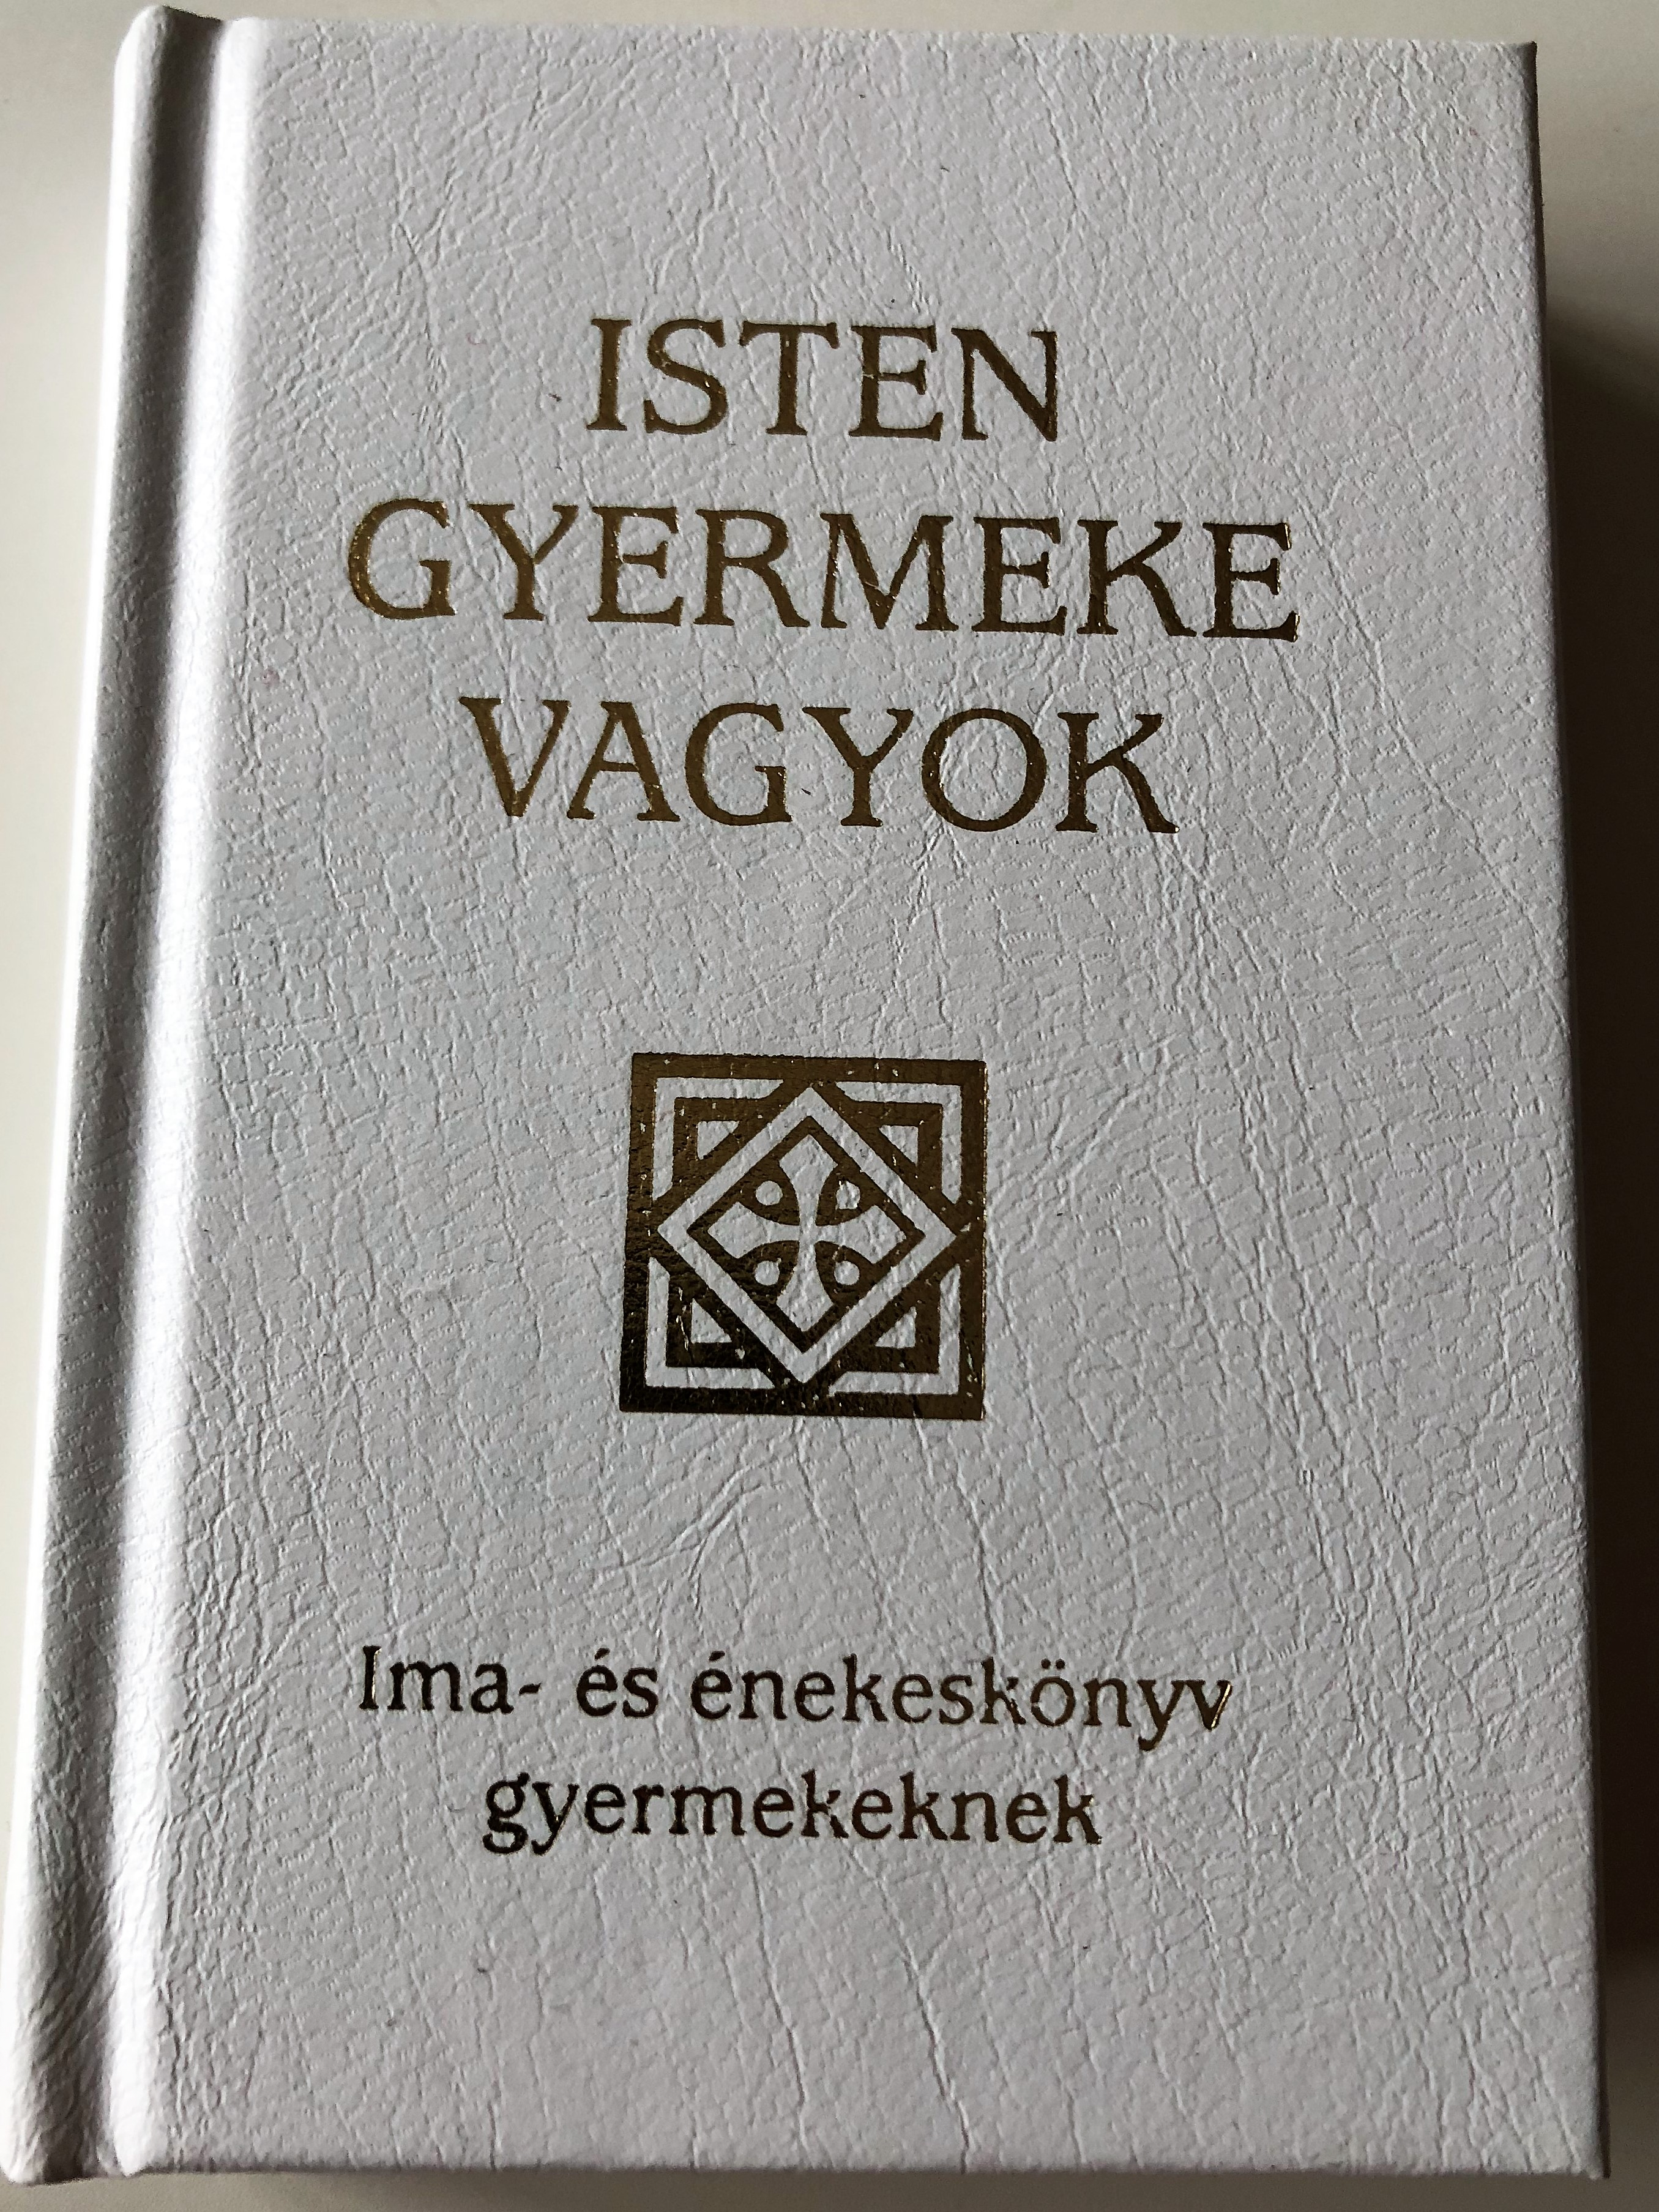 isten-gyermeke-vagyok-i-am-a-child-of-god-hungarian-language-catholic-prayerbook-and-songbook-for-children-with-color-illustrations-hardcover-szent-istv-n-t-rsulat-2016-1-.jpg